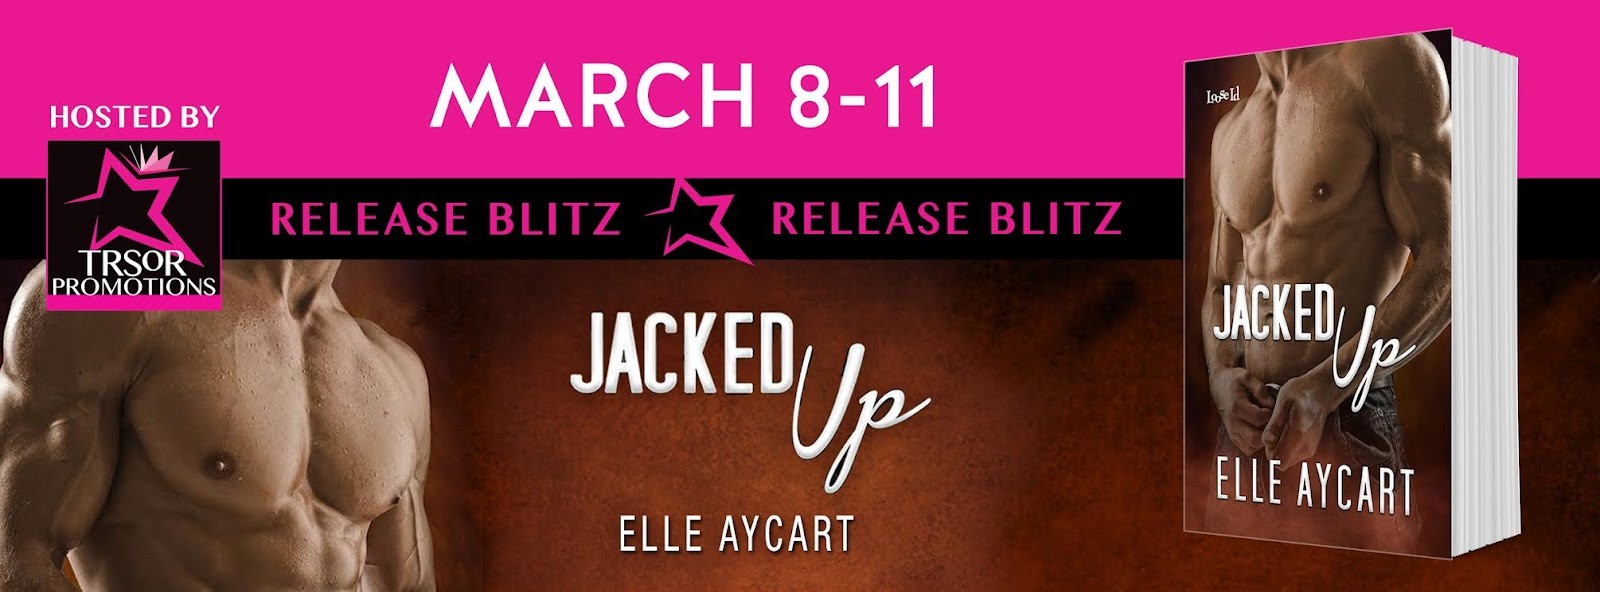 jacked up it's live.jpg